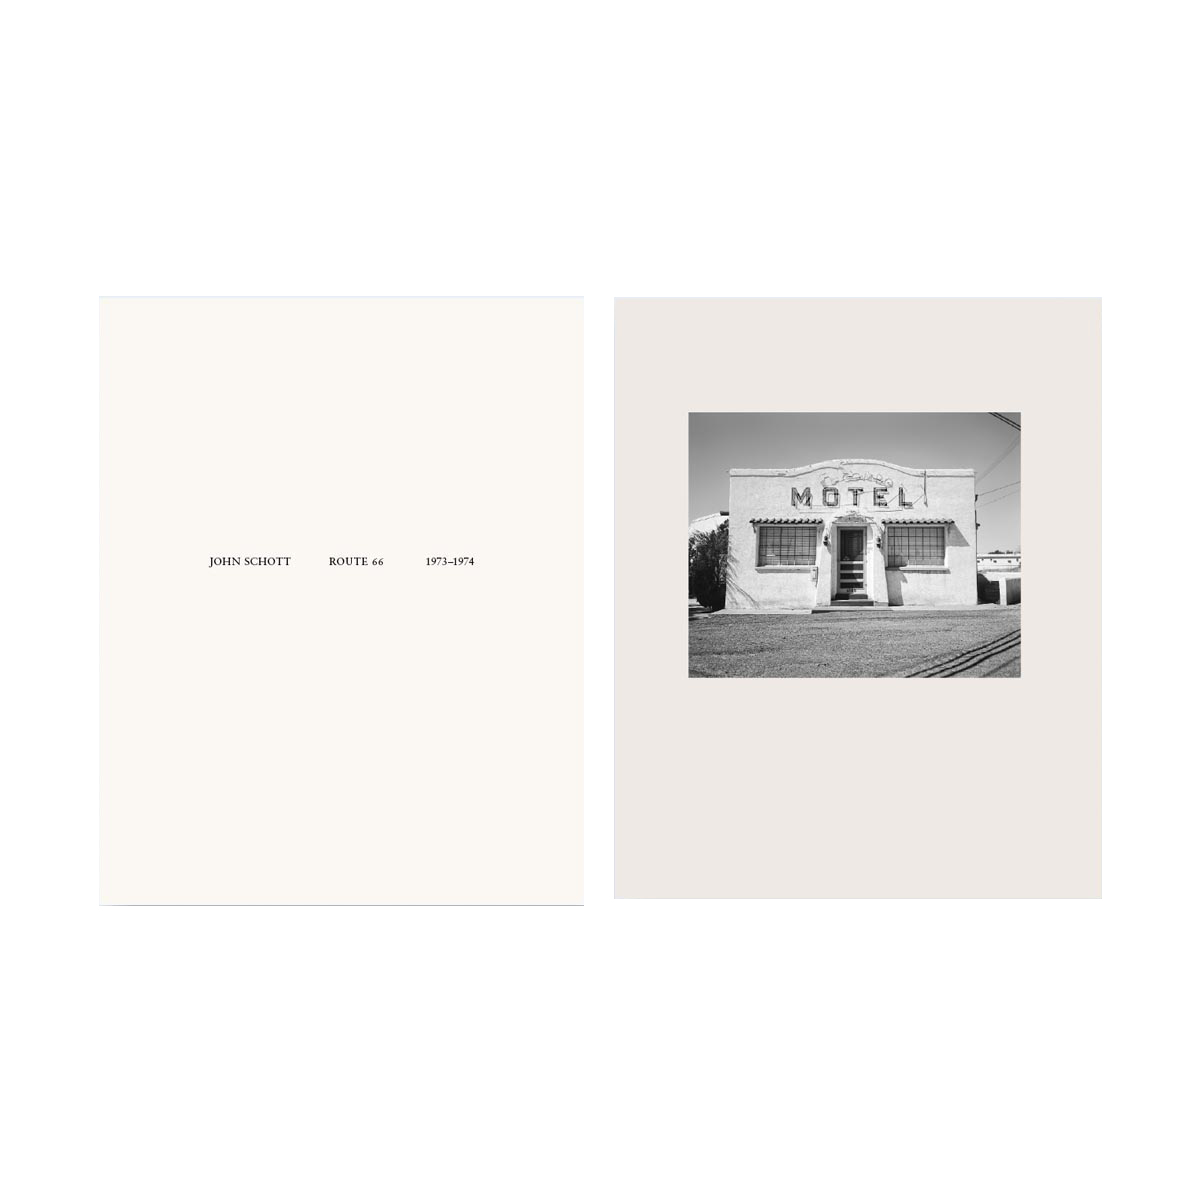 "NZ Library #1: John Schott: Route 66, Special Limited Edition (with Gelatin Silver Contact Print ""Untitled"" from the Series ""Route 66 Motels,"" El Pueblo Court Motel with Neon Vacancy Sign) (NZ Library - Set One, Volume Six)"